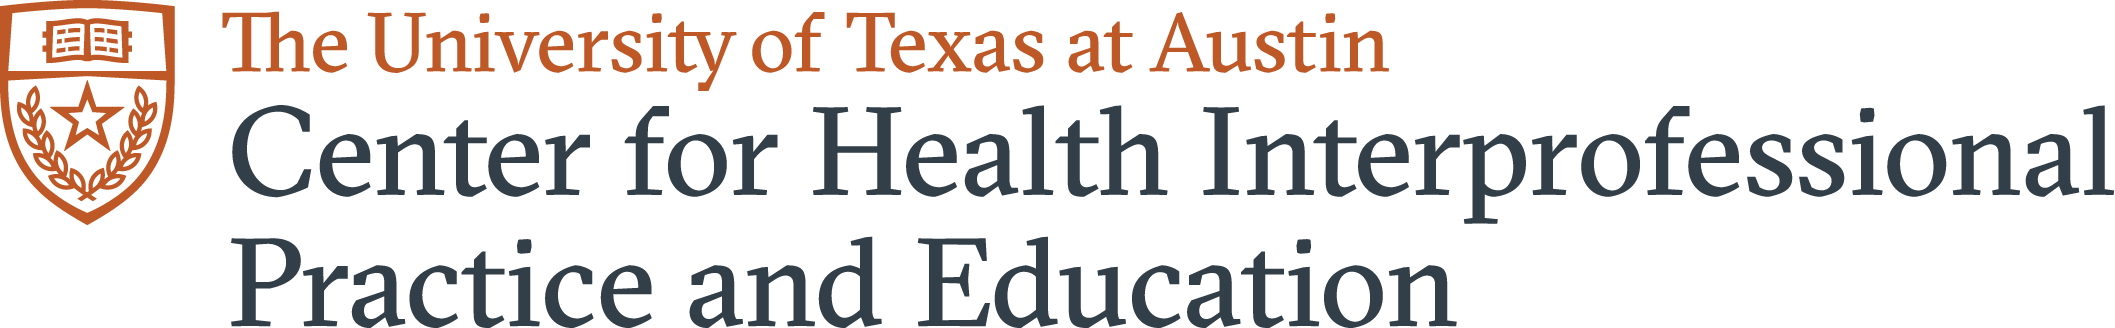 Center for Health Interprofessional Practice and Education logo